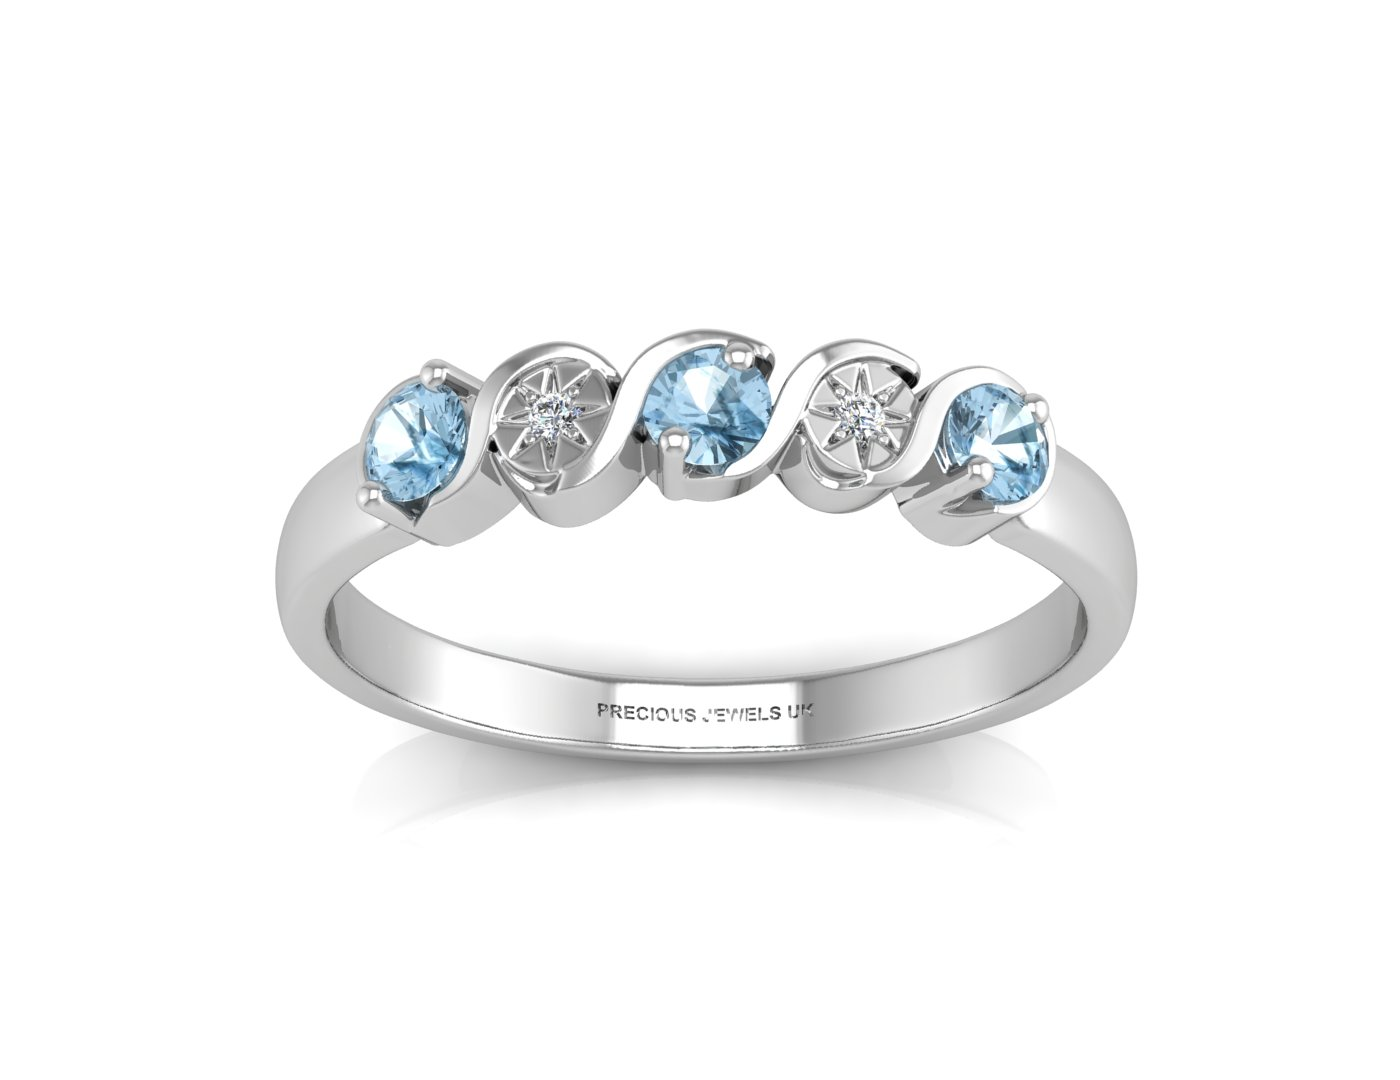 9ct White Gold Semi Eternity Diamond And Blue Topaz Ring 0.01 Carats - Image 3 of 4